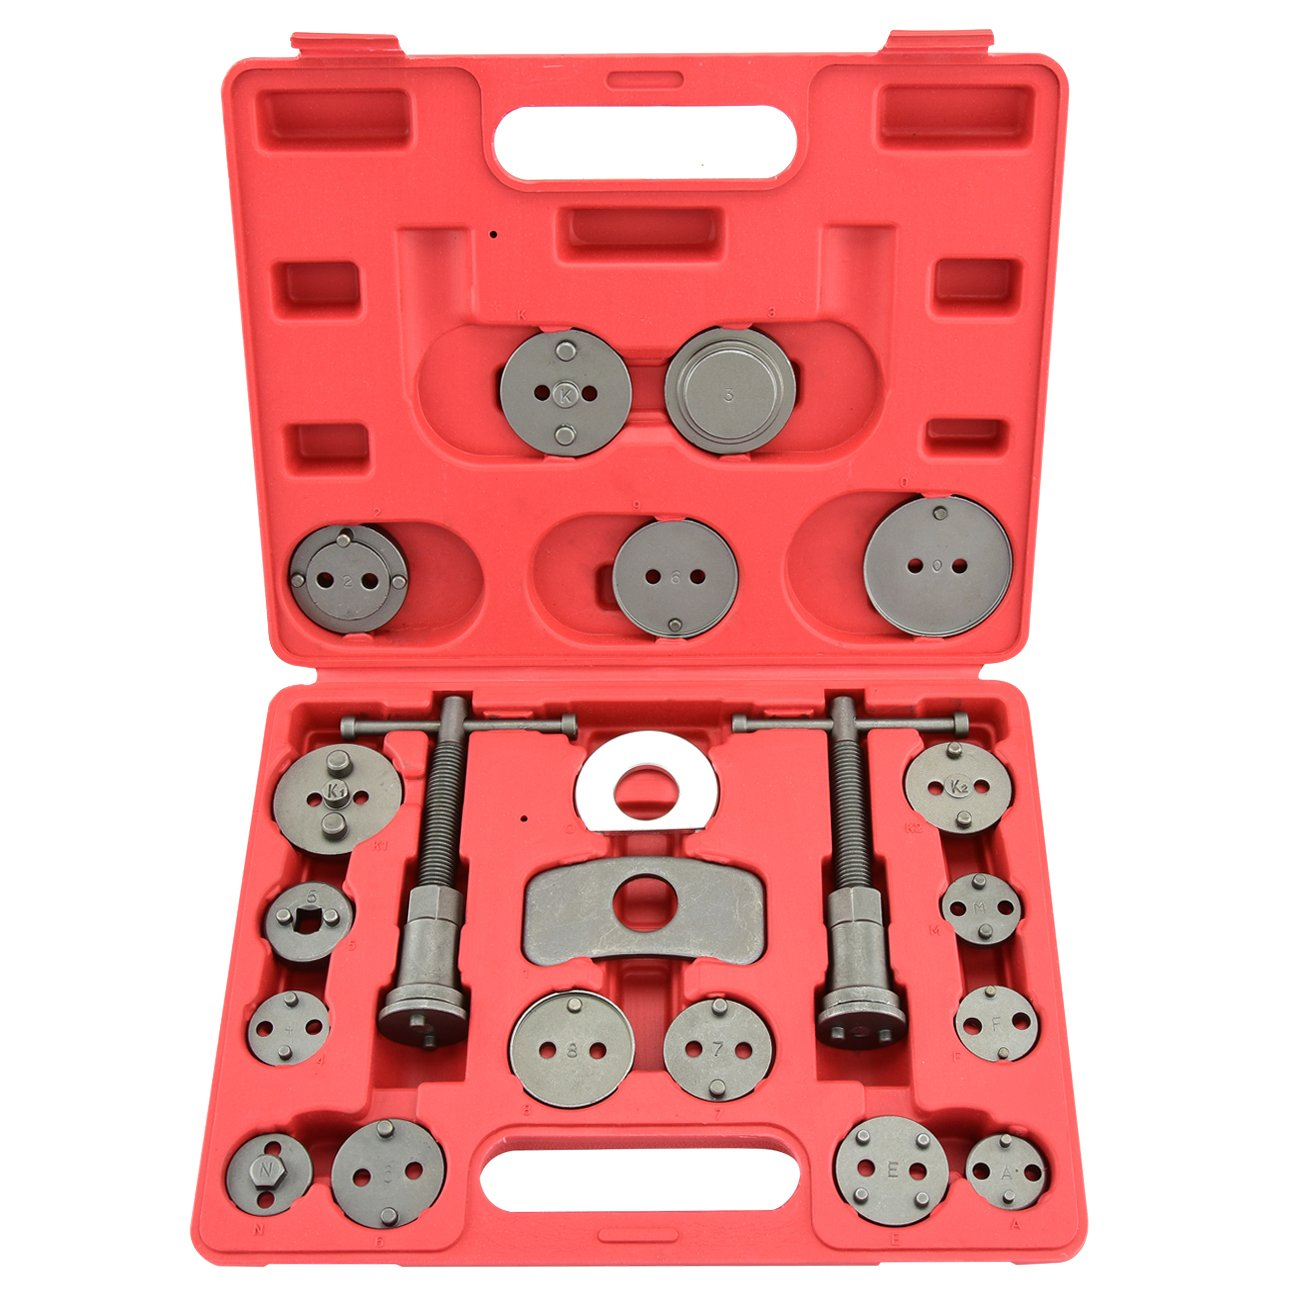 21 Piece Tool Kit Car/Truck Disc Brake Caliper Rewind Wind Back Auto Tool Set Kit for Piston Pad Disc Brake Car Truck Mechanics